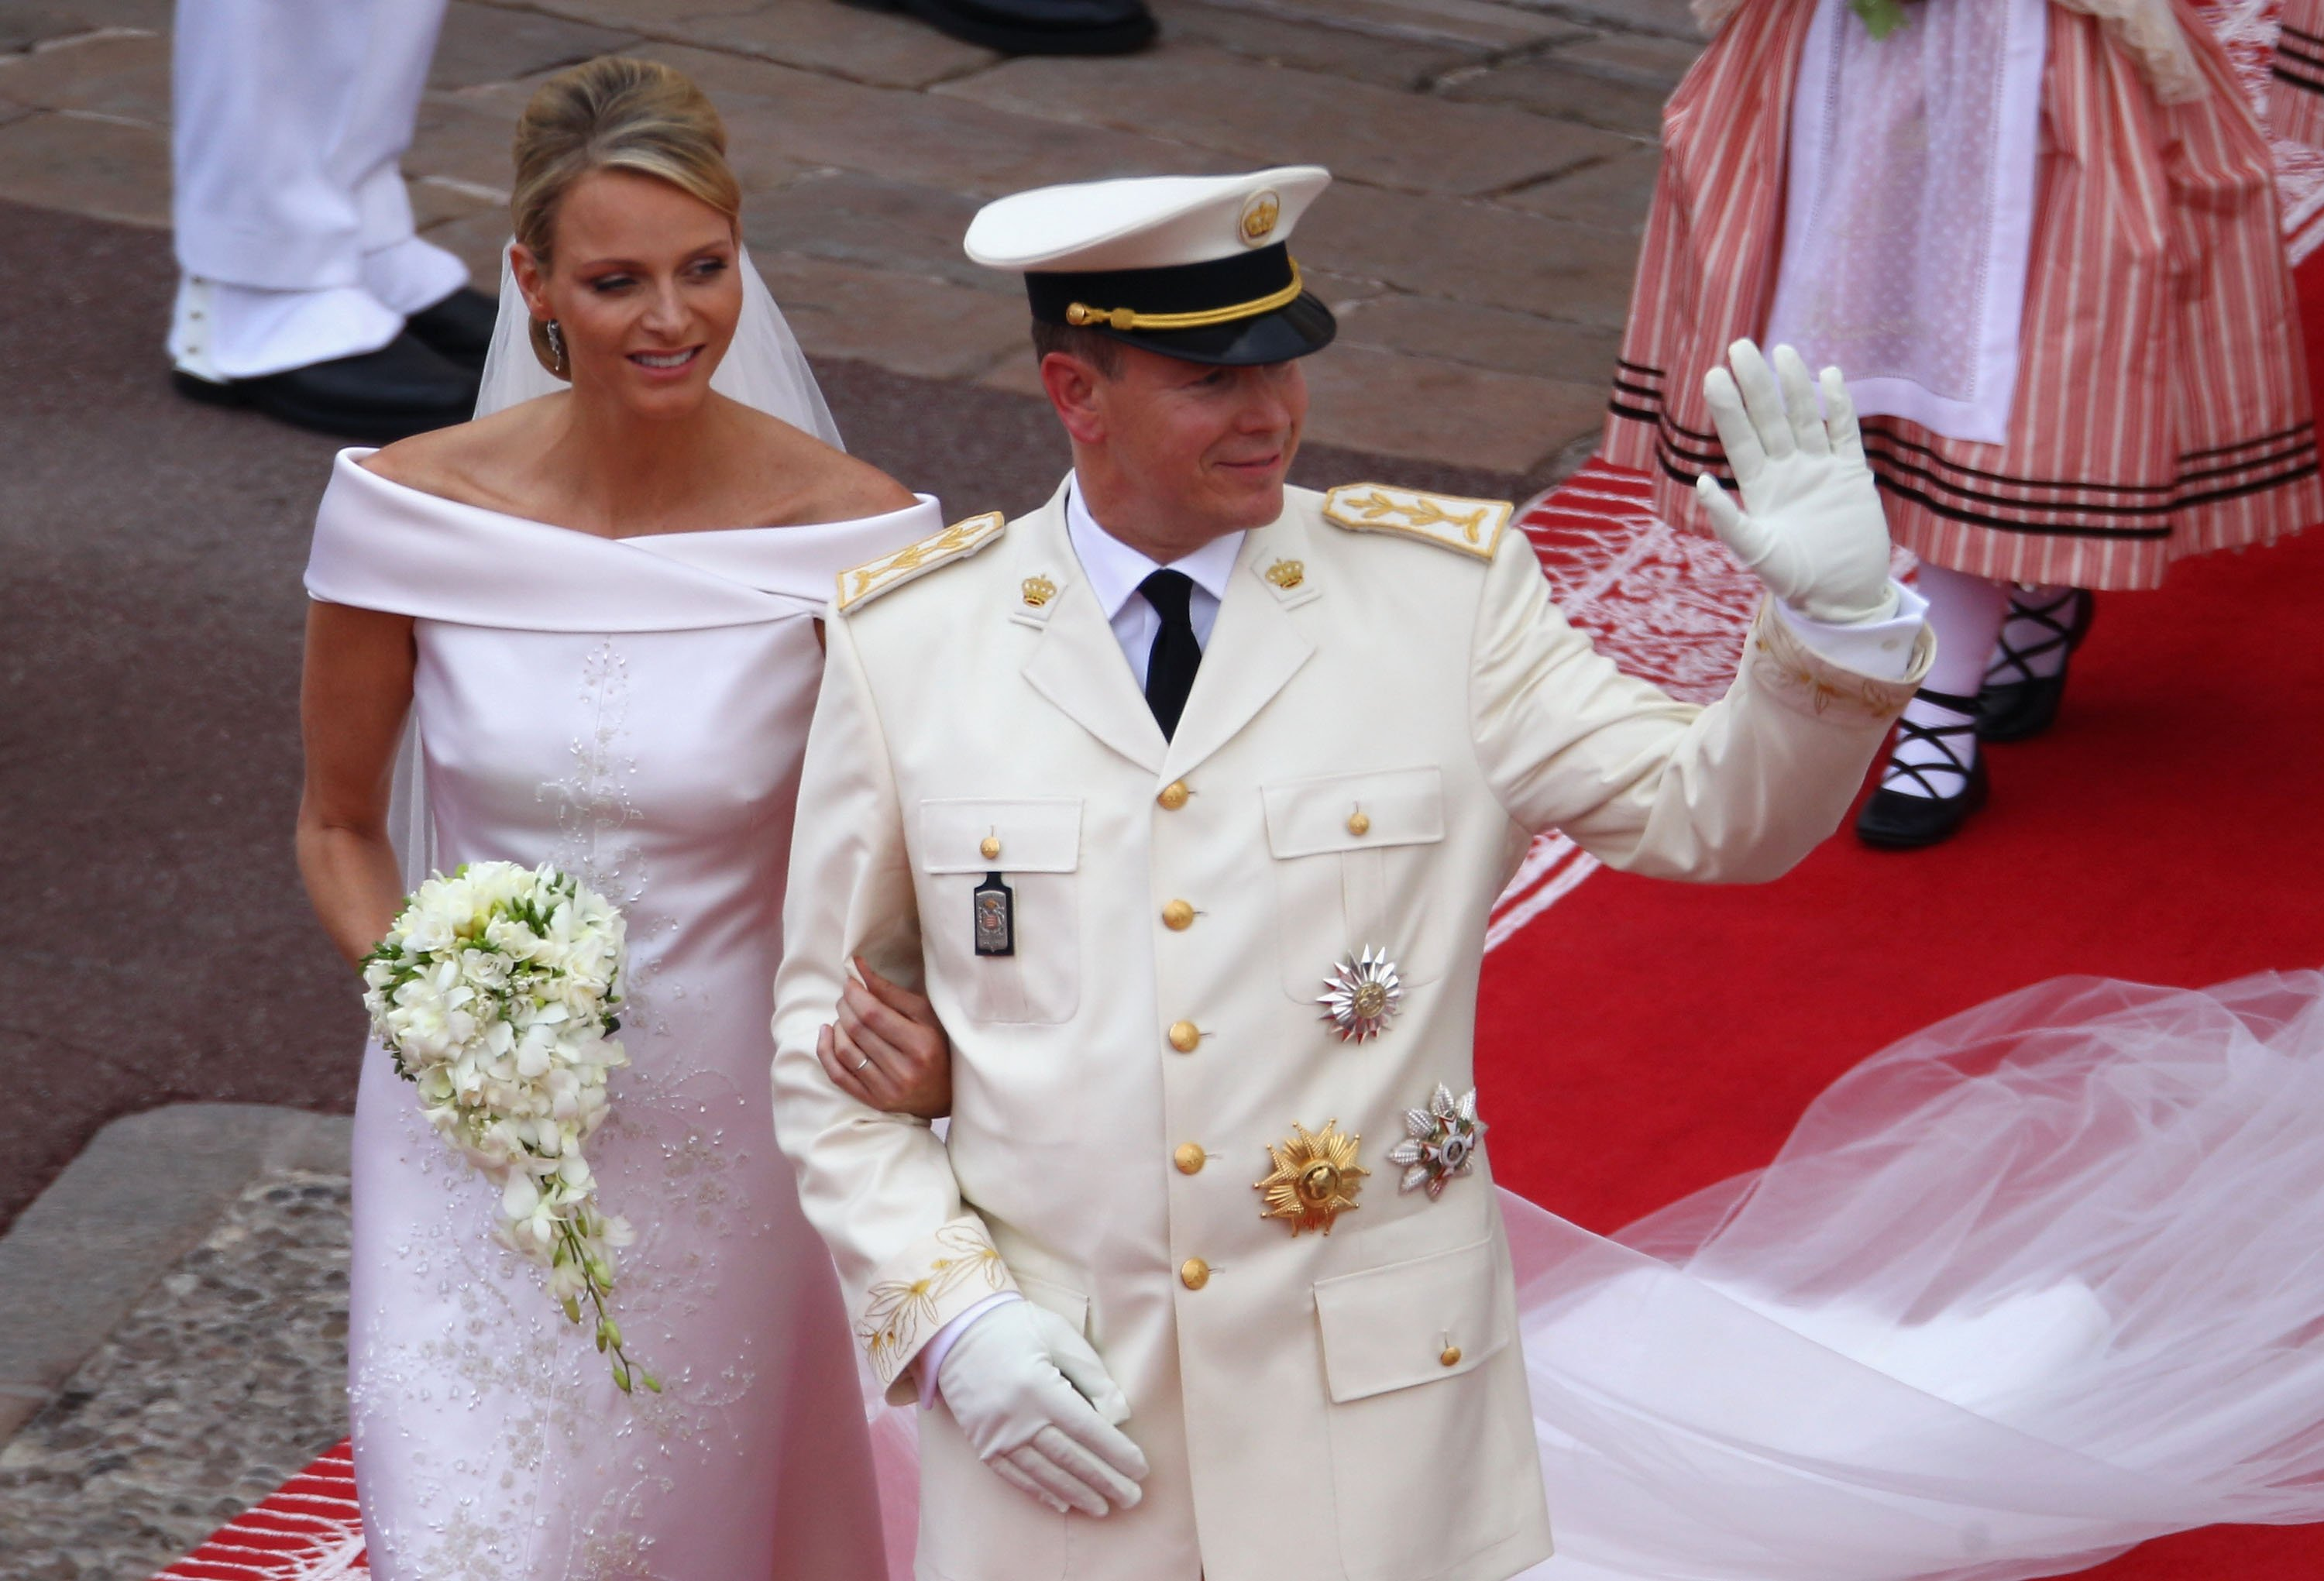 Princess Charlene and Prince Albert II of Monaco on their wedding day, July, 2011 | Photo: Getty Images.